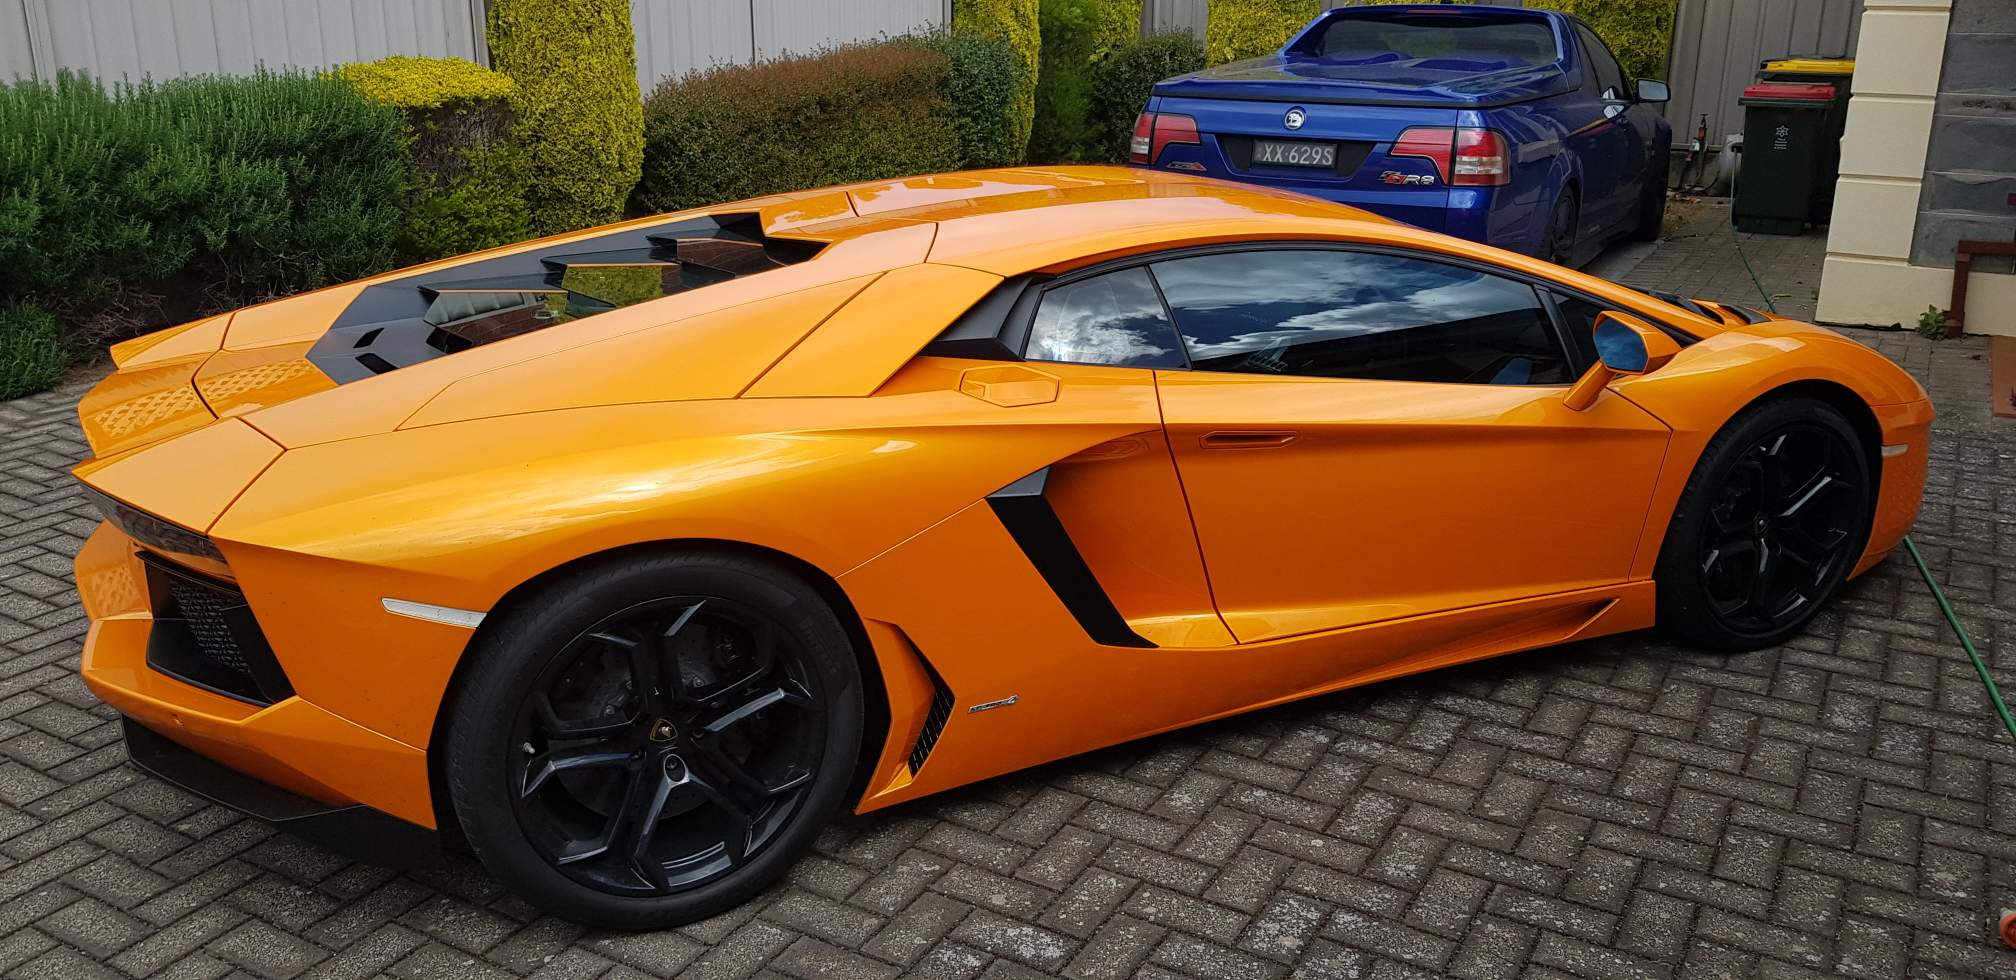 This is one of Detailing Adelaide favourite regular detailing jobs a bright orange fabulous Lamborghini